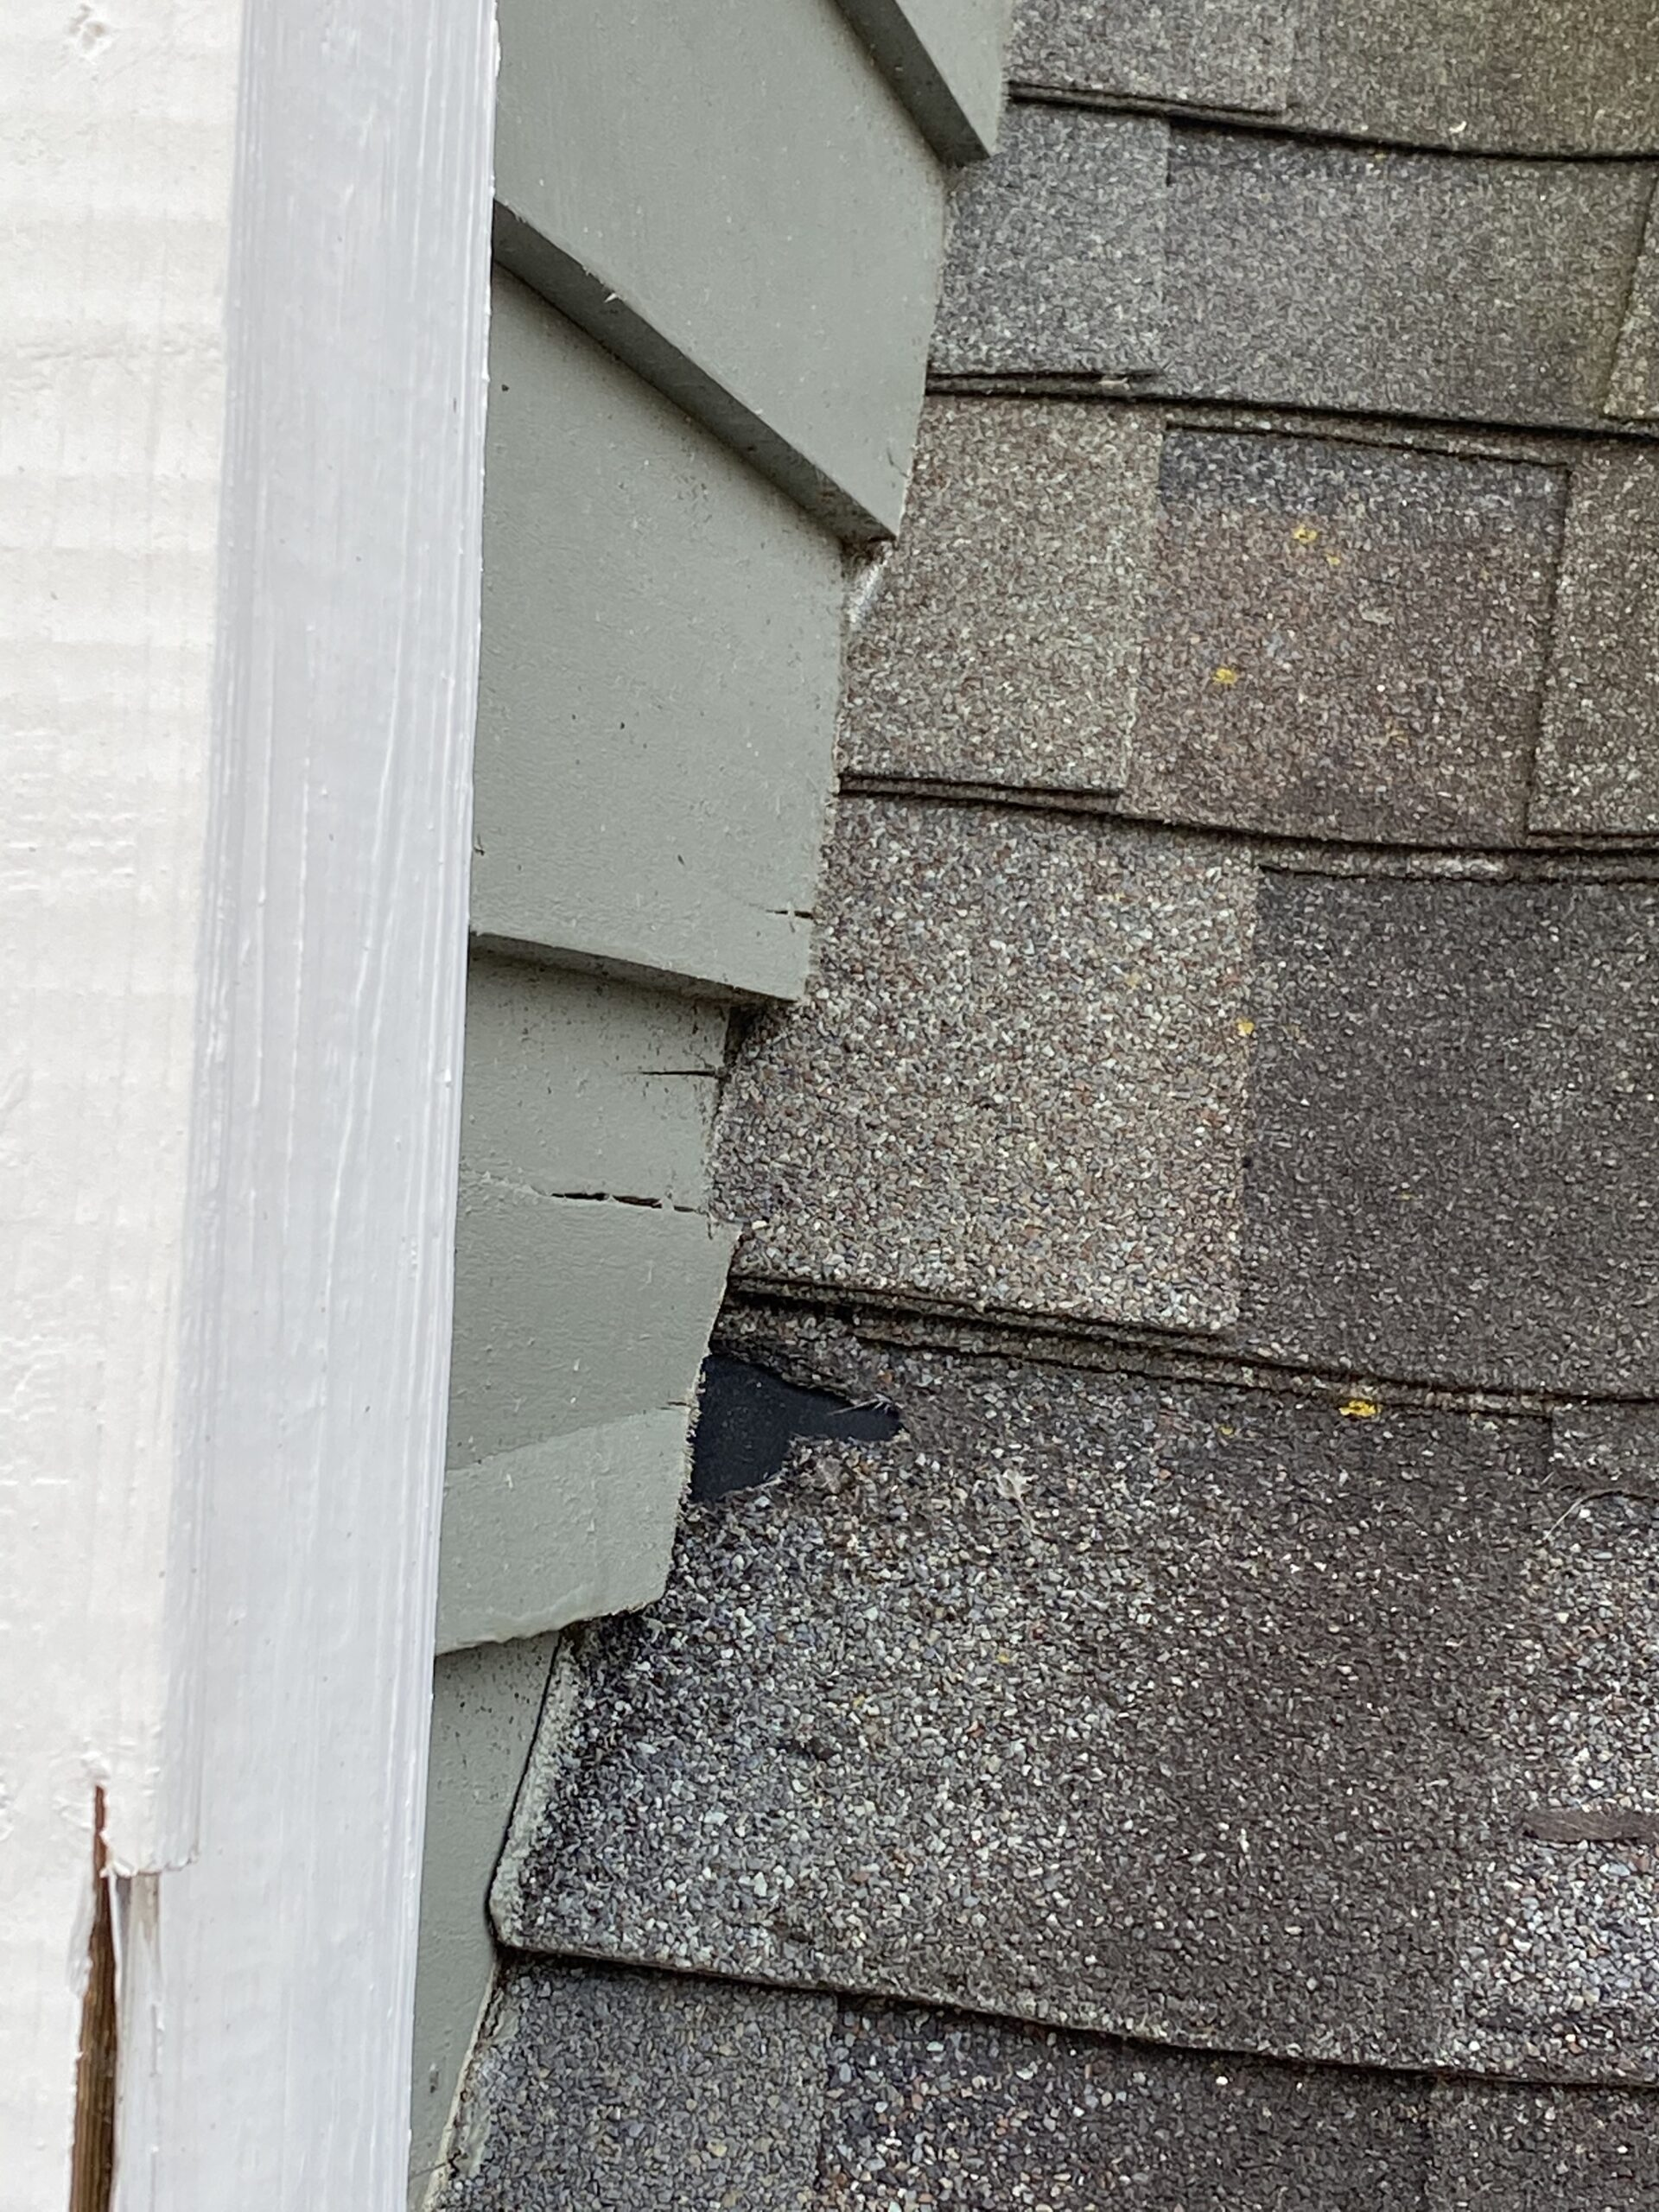 This is a picture of a dark brown shingle that is damaged